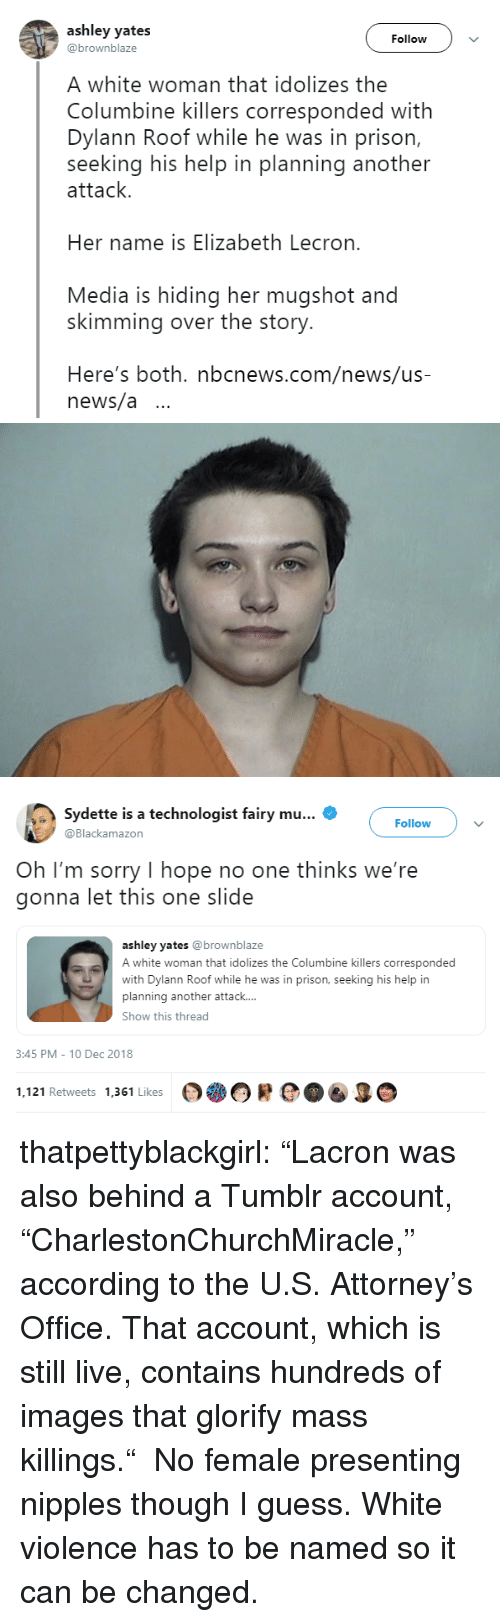 """News, Sorry, and Tumblr: ashley yates  @brownblaze  Follow  A white woman that idolizes the  Columbine killers corresponded with  Dylann Roof while he was in prison,  seeking his help in planning another  attack.  Her name is Elizabeth Lecron.  Media is hiding her mugshot and  skimming over the story.  Here's both. nbcnews.com/news/us-  news/a ..   Sydette is a technologist fairy mu  Blackamazon  Follow  Oh I'm sorry I hope no one thinks we're  gonna let this one slide  ashley yates @brownblaze  A white woman that idolizes the Columbine killers corresponded  with Dylann Roof while he was in prison, seeking his help in  planning another attack....  Show this thread  3:45 PM-10 Dec 2018  1.121 Retweets 1361 Likes OOR  O thatpettyblackgirl:    """"Lacron was also behind a Tumblr account, """"CharlestonChurchMiracle,"""" according to the U.S. Attorney's Office. That account, which is still live, contains hundreds of images that glorify mass killings."""" No female presenting nipples though I guess.     White violence has to be named so it can be changed."""